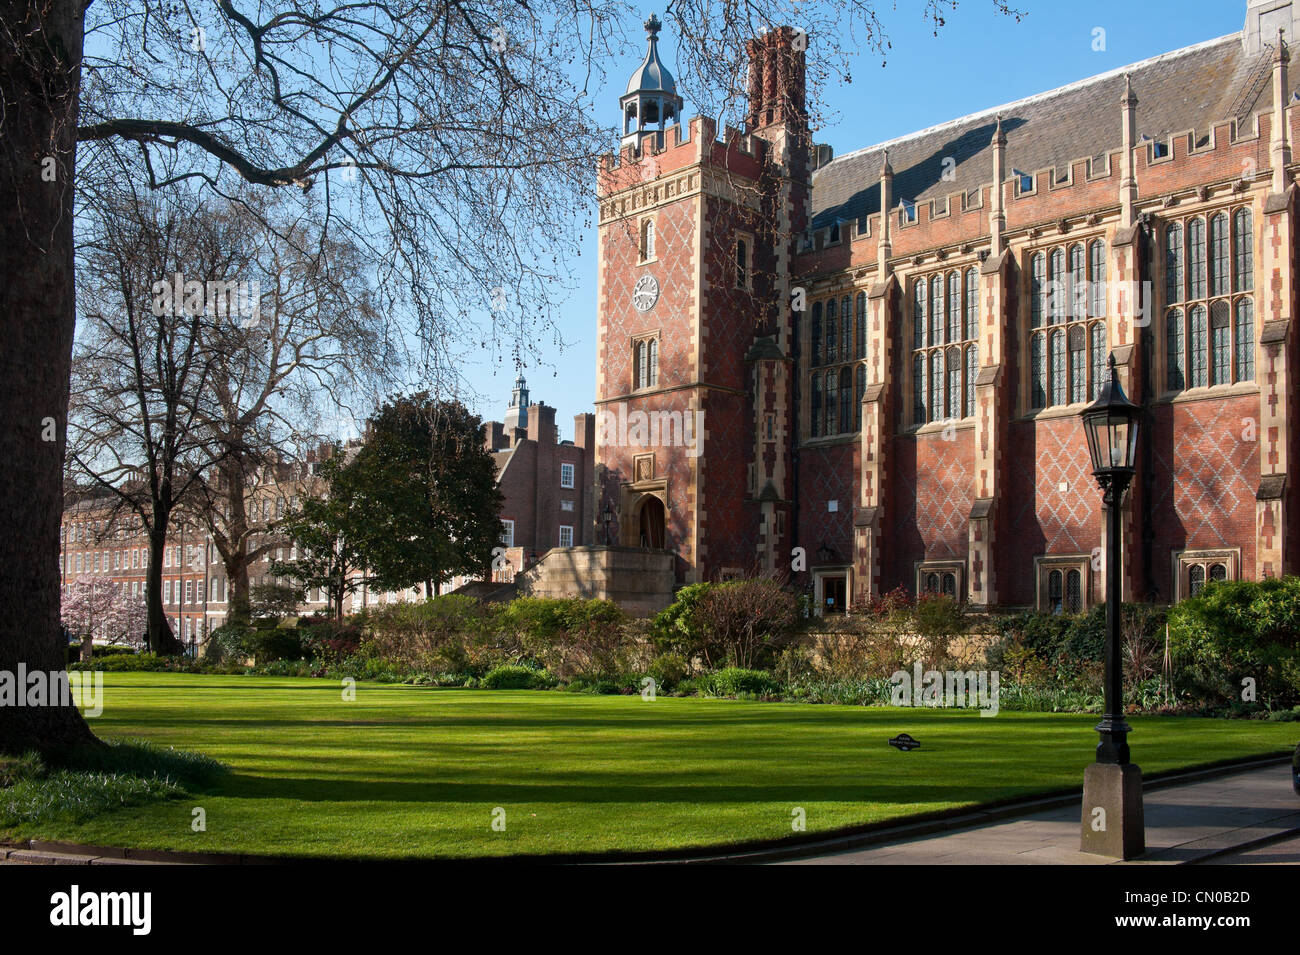 Great Hall and Library at Lincoln's Inn in Holborn, London - Stock Image